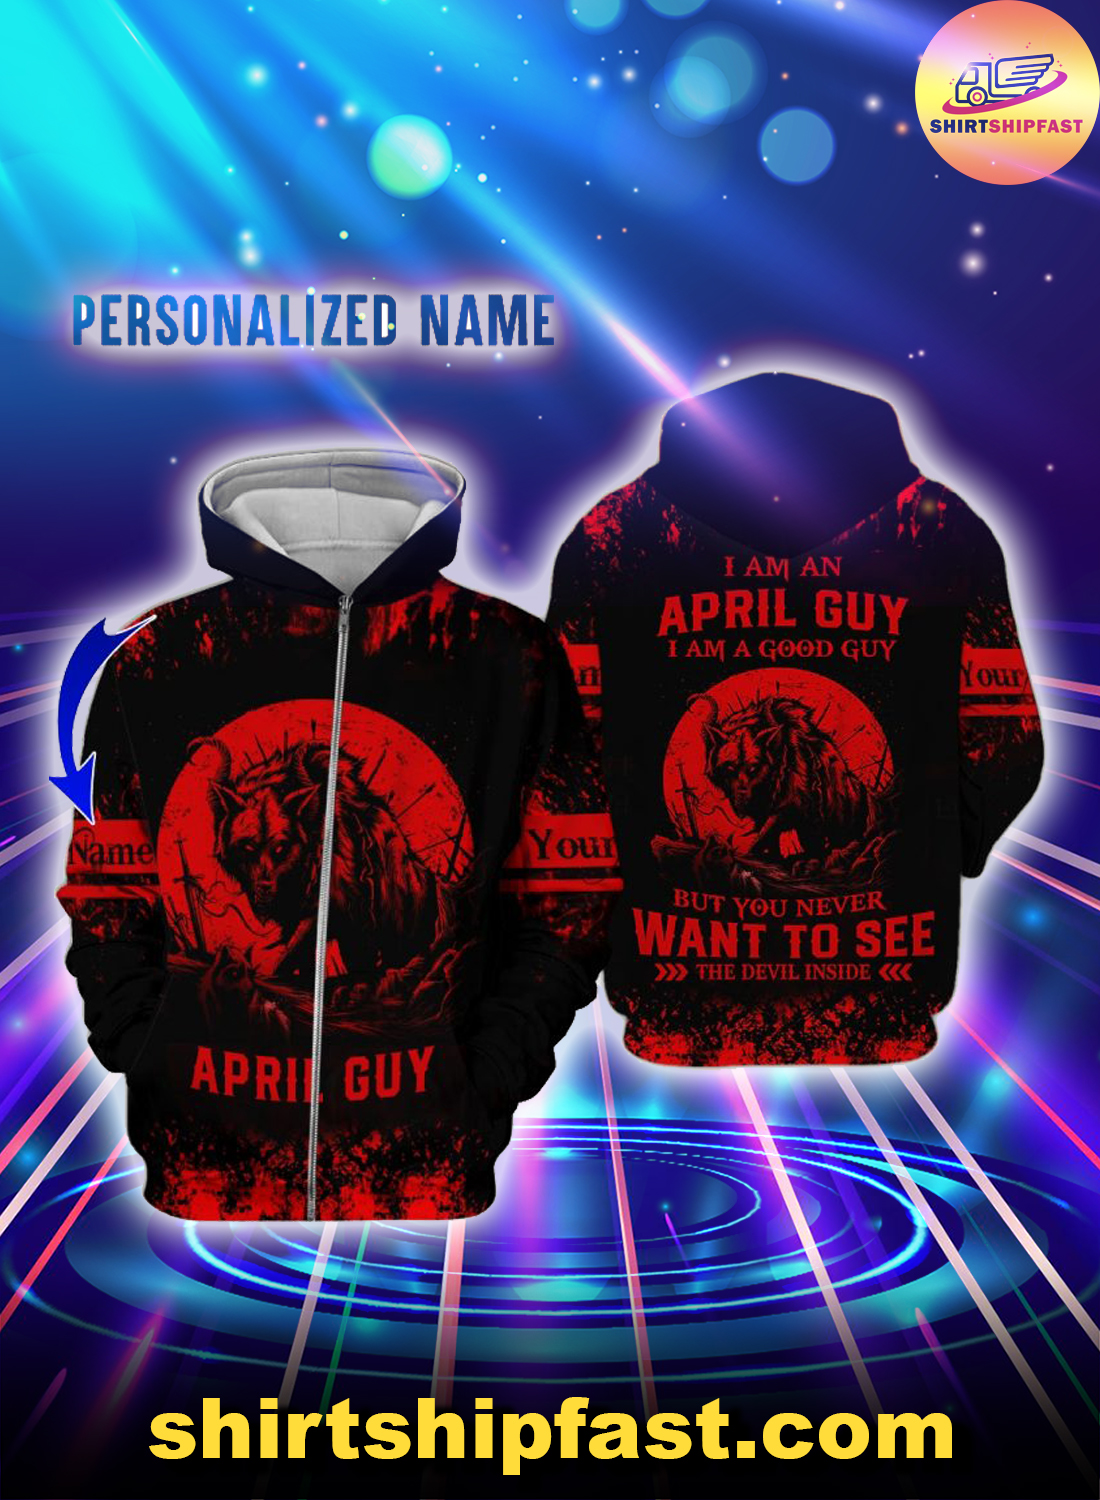 Personalized name I am a April guy I am a good guy but you never want to see the devil inside 3d zip hoodie